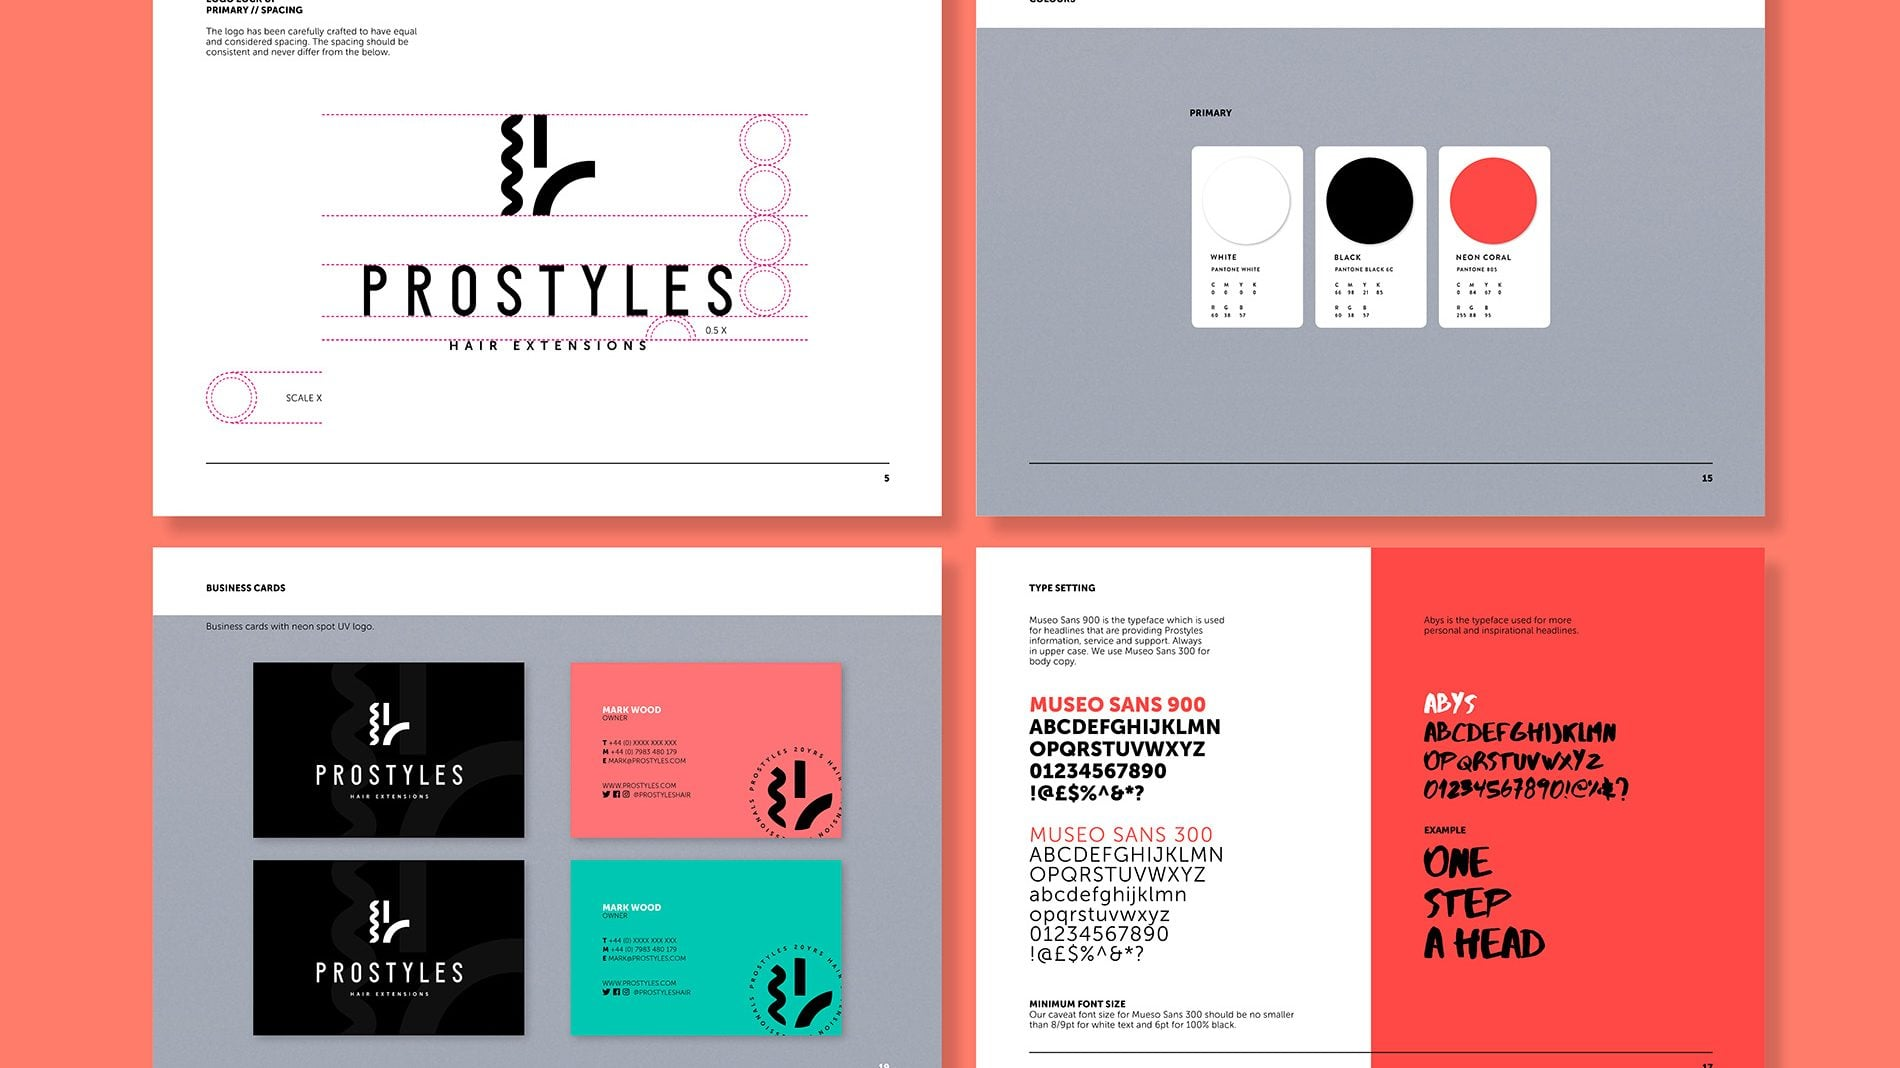 flat-lay of 4 pages from the prostyles brand guidelines created by beyond london